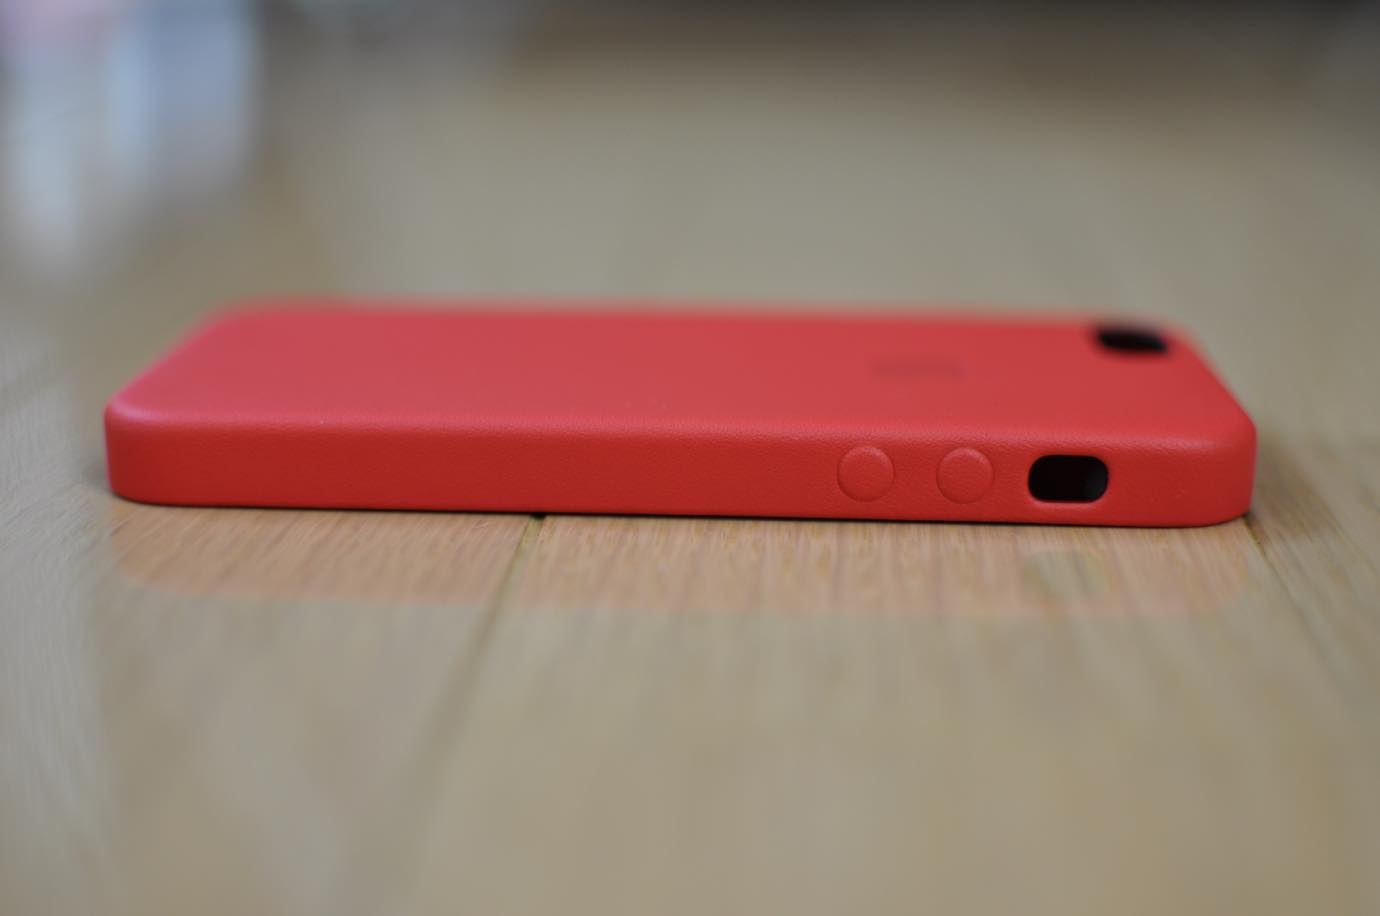 IPhone 5s Case   PRODUCT RED 04 20141215 214945